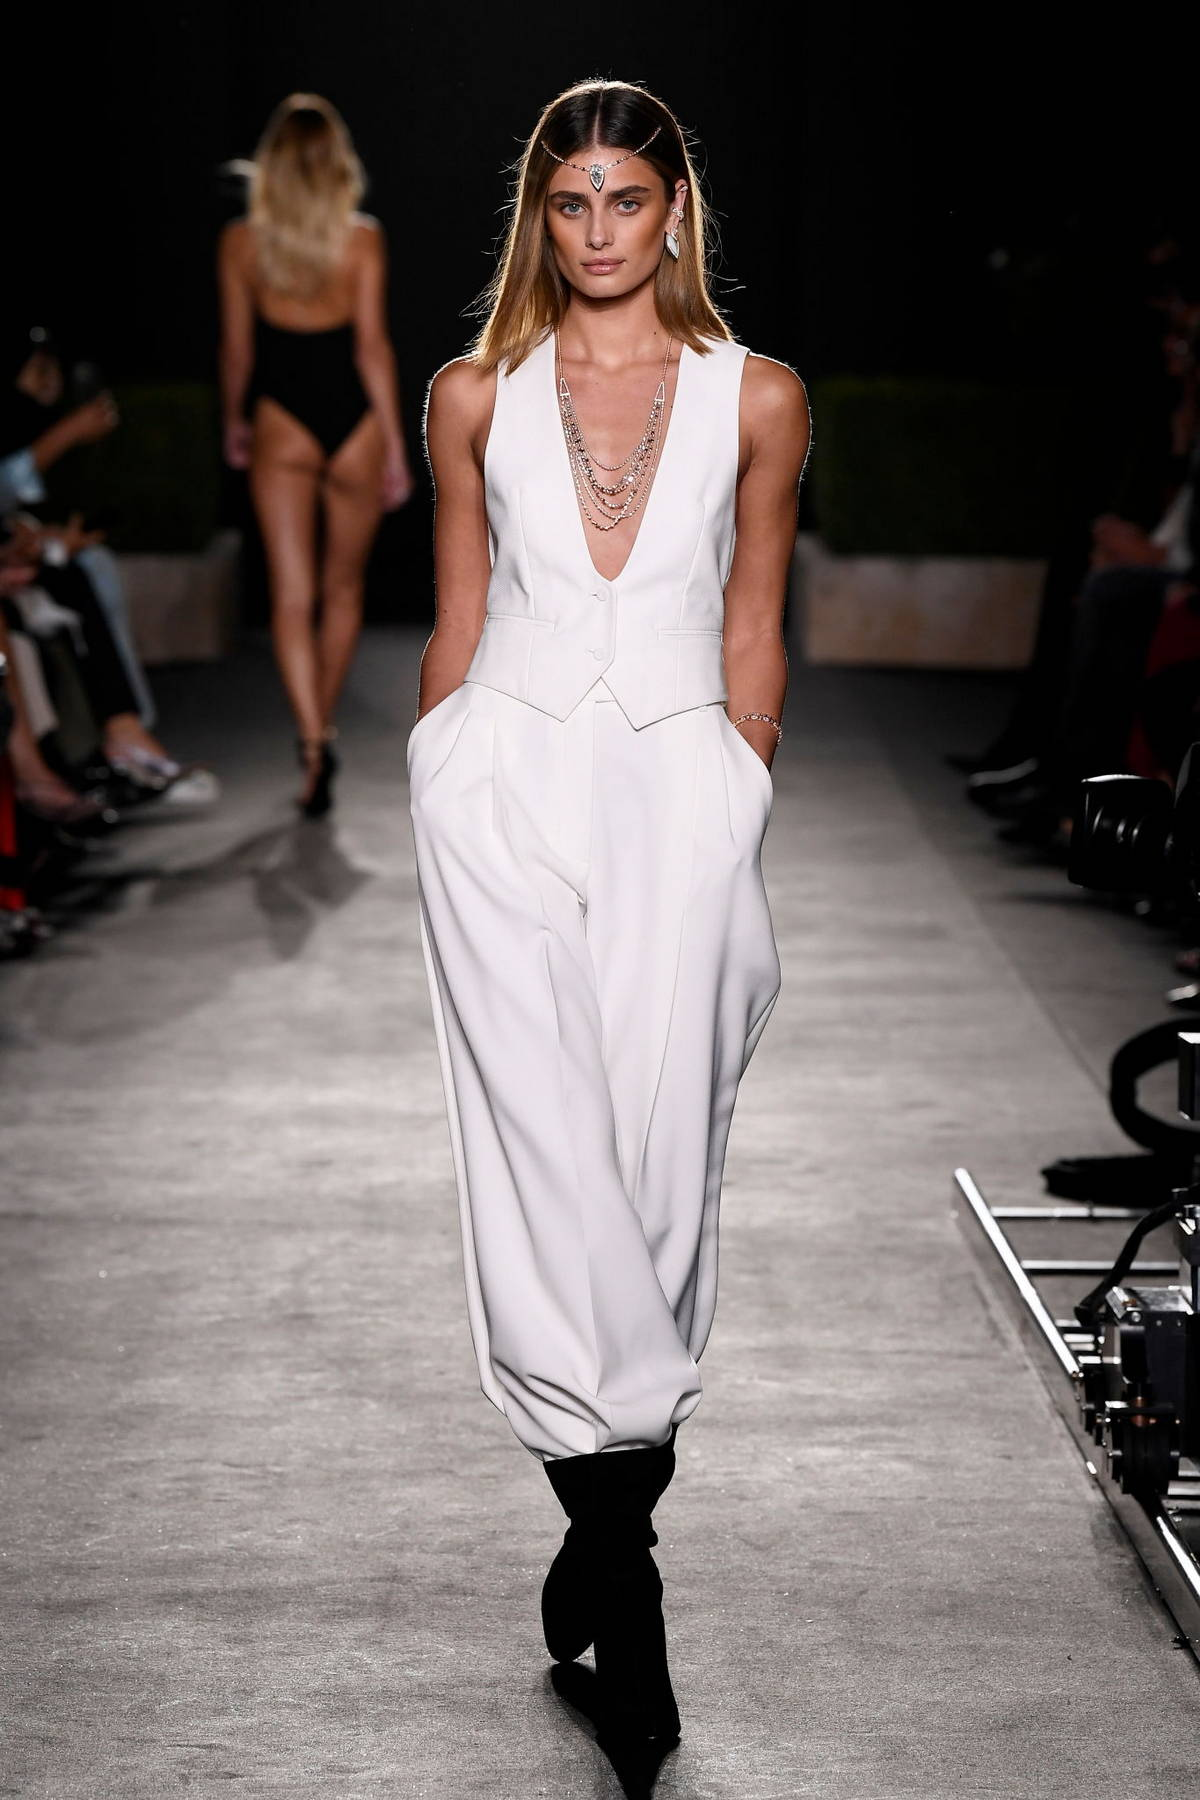 Taylor Hill walks the runway for Kate Moss High Jewelry show during Paris Fashion Week in Paris, France